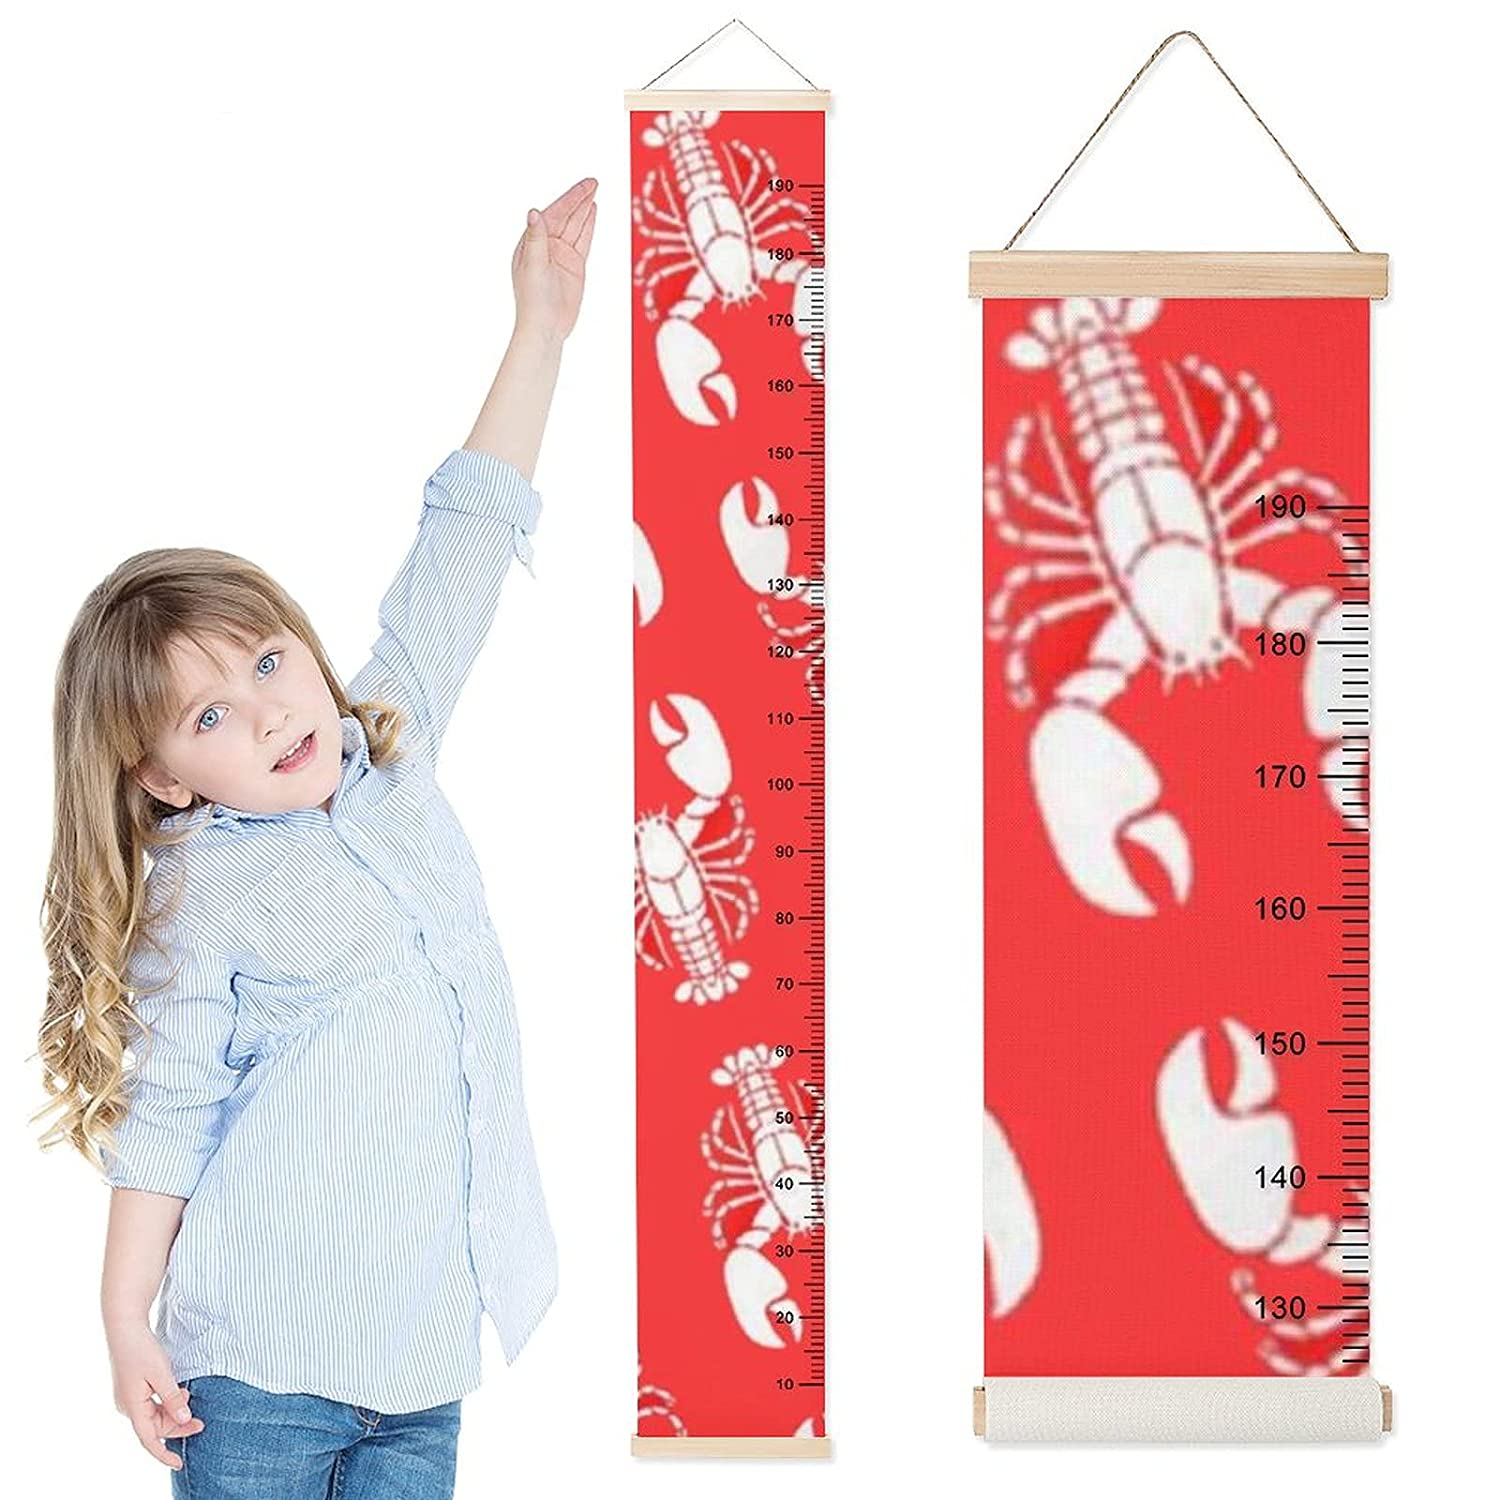 Growth Chart for San Antonio Mall Kids Cute Japan Maker New Lobsters Measurement Children Height